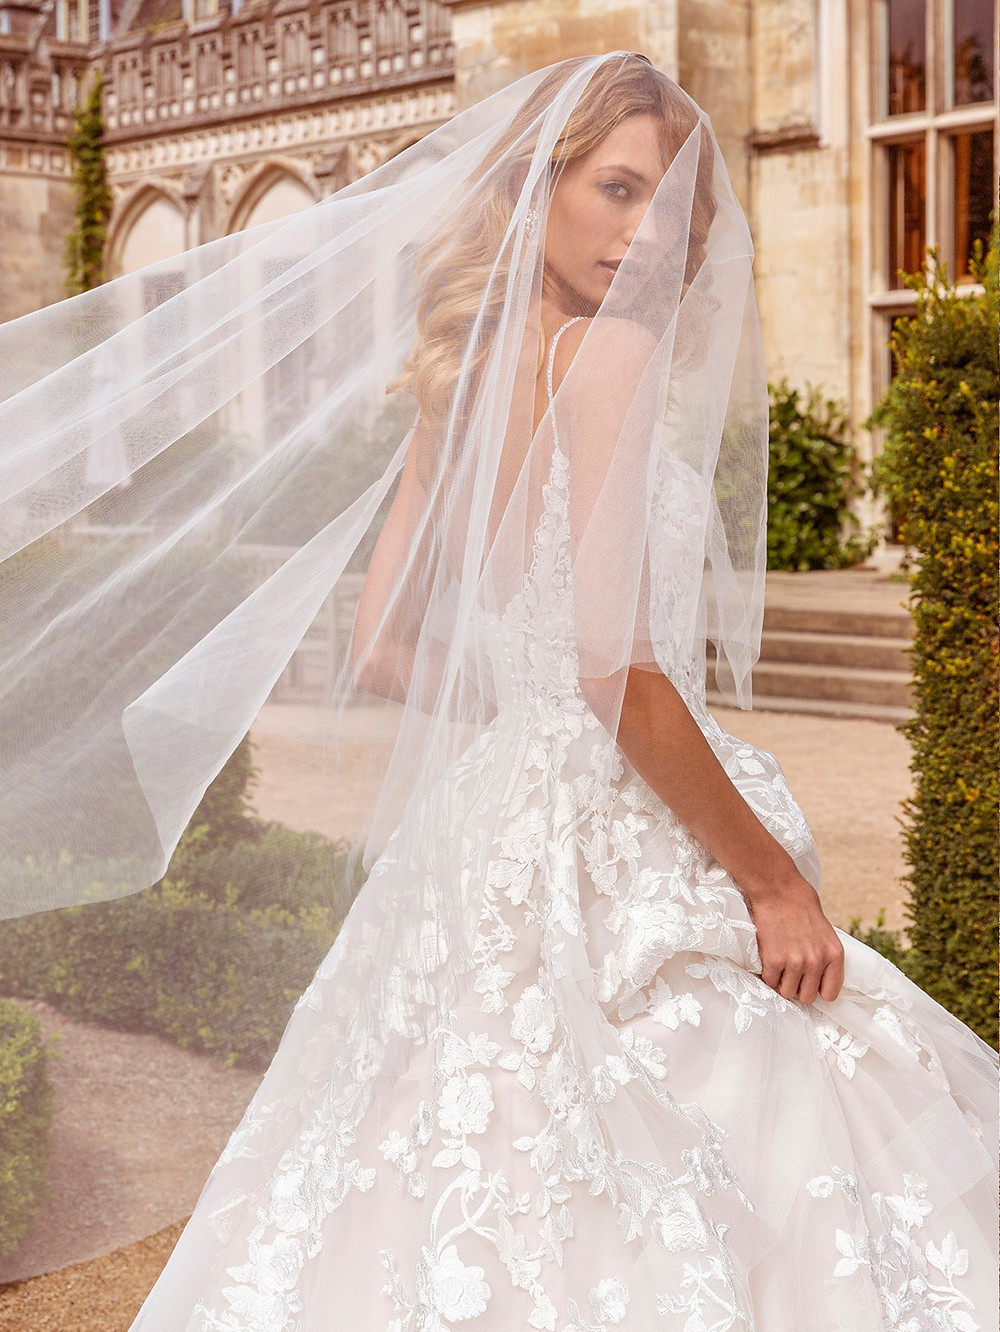 Top Tips for Choosing Your Bridal Accessories